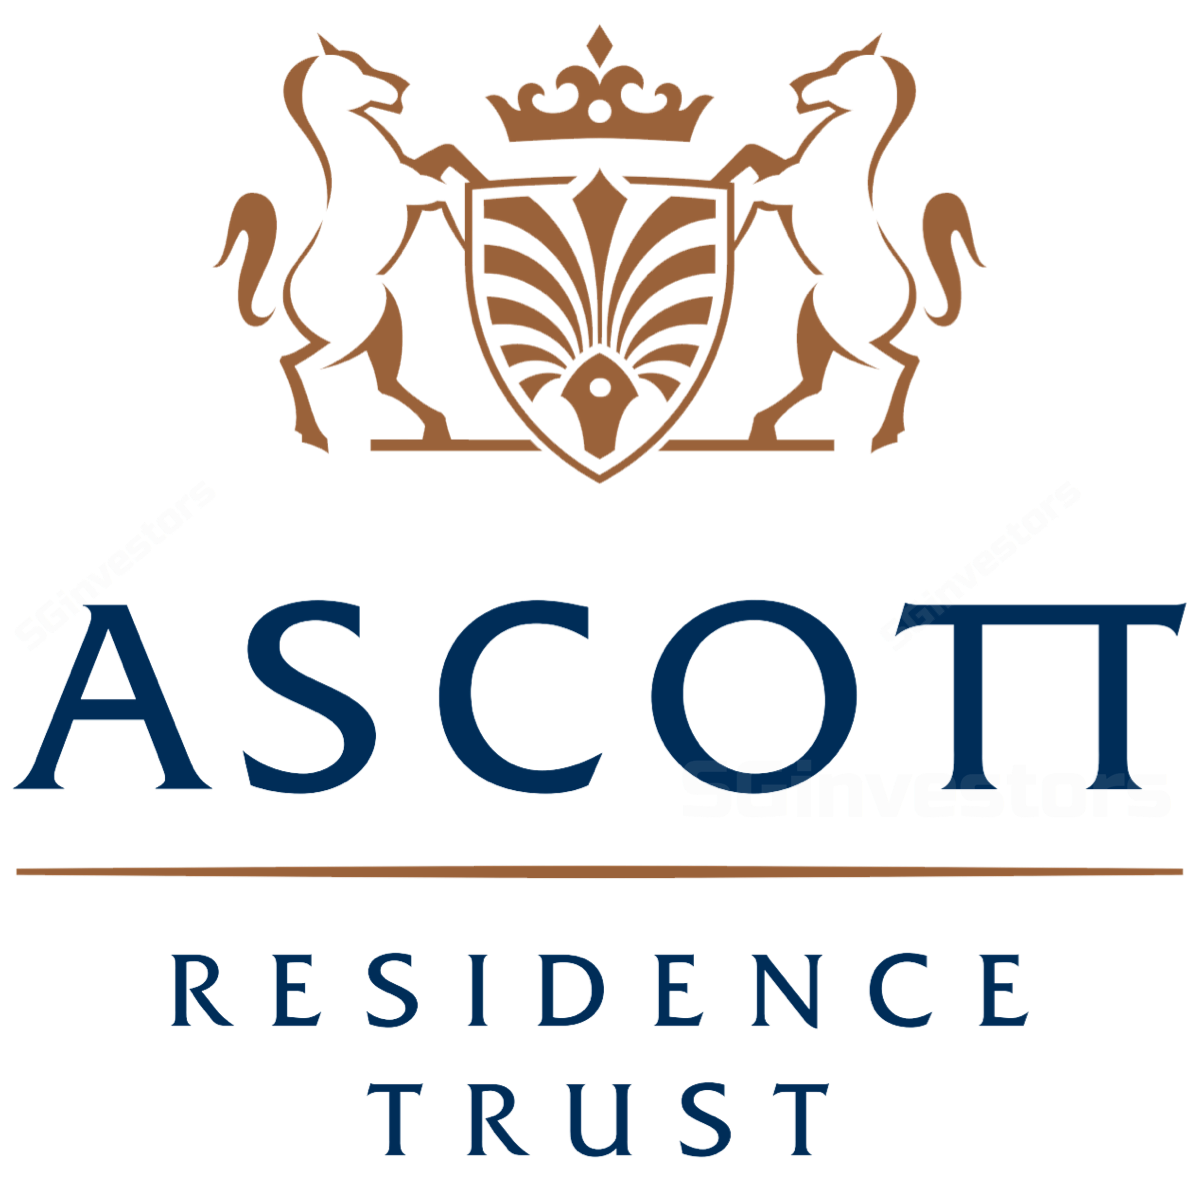 Ascott Residence Trust (ART SP) - UOB Kay Hian 2017-03-08: Acquisitions Fall Short Of Mitigating Dilutive Rights; Downgrade To HOLD